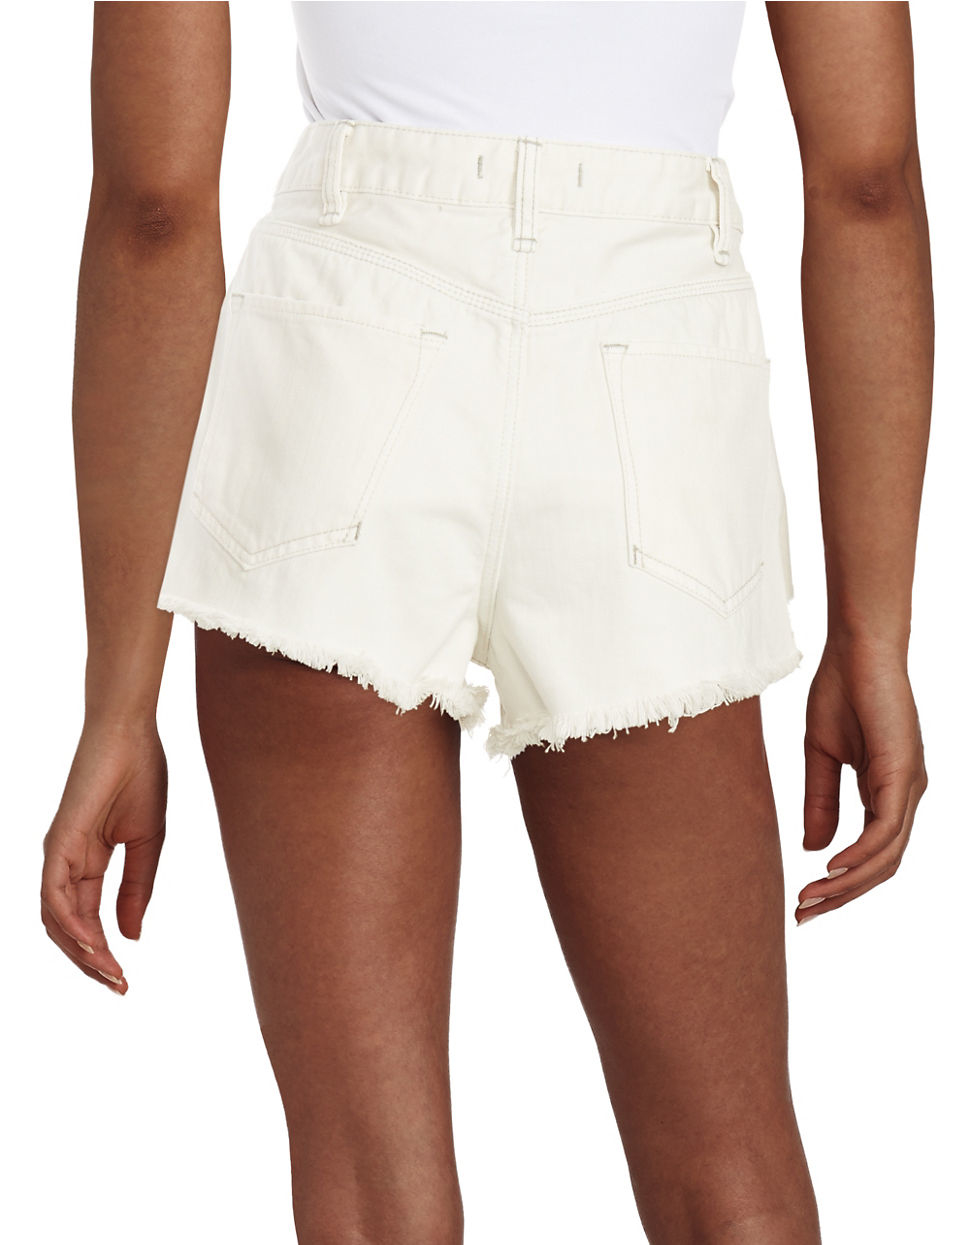 Find great deals on eBay for white denim shorts. Shop with confidence.